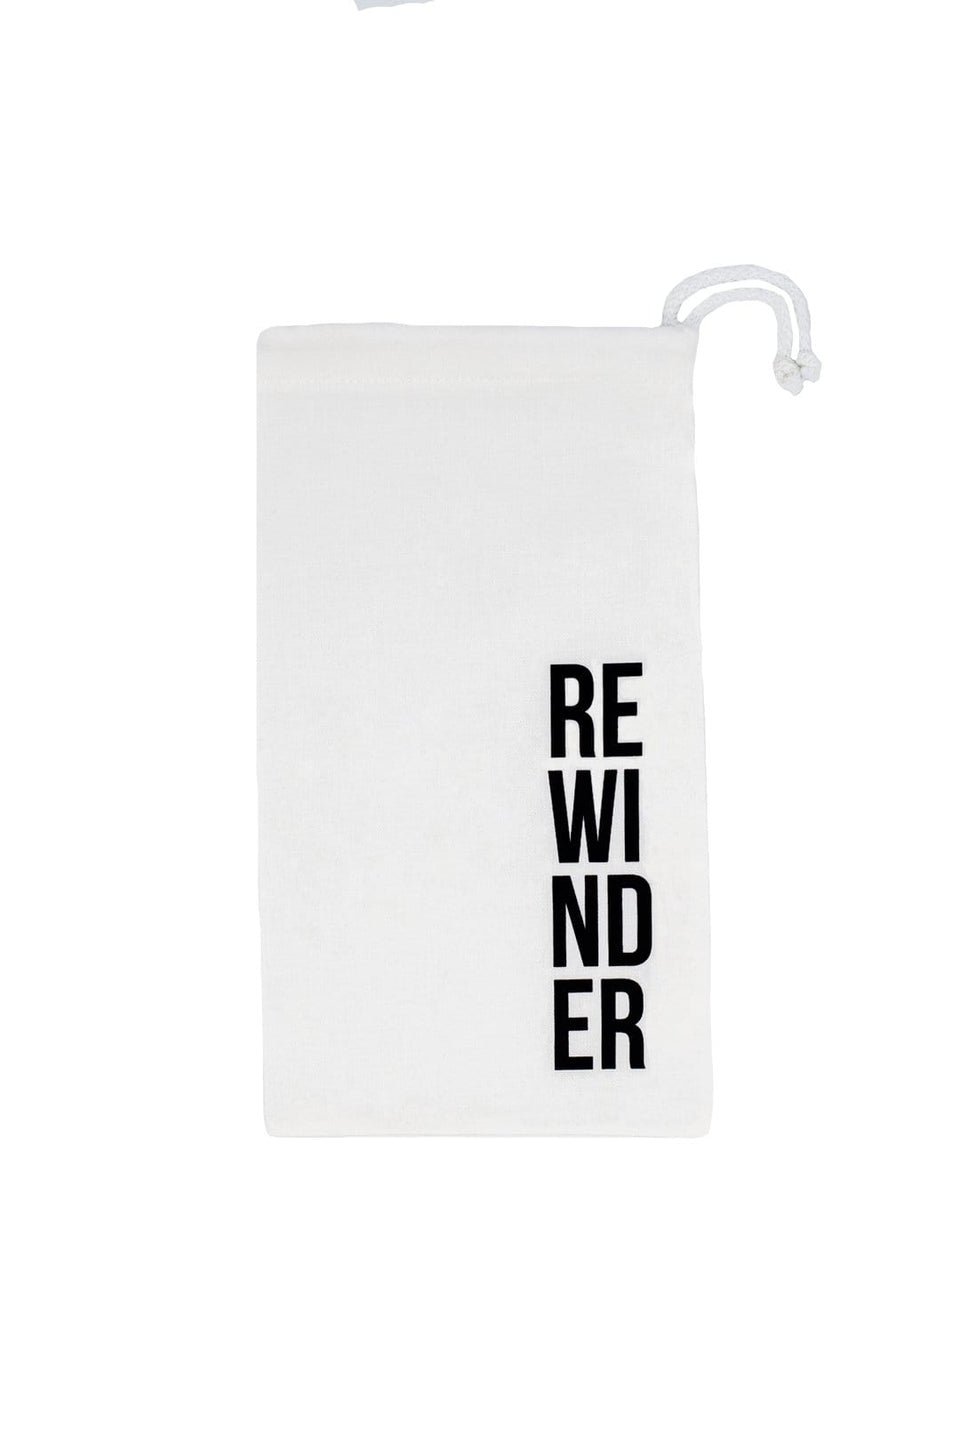 Rewinder Mask Bag Rewinder Mask Bag Eco Zero Waste